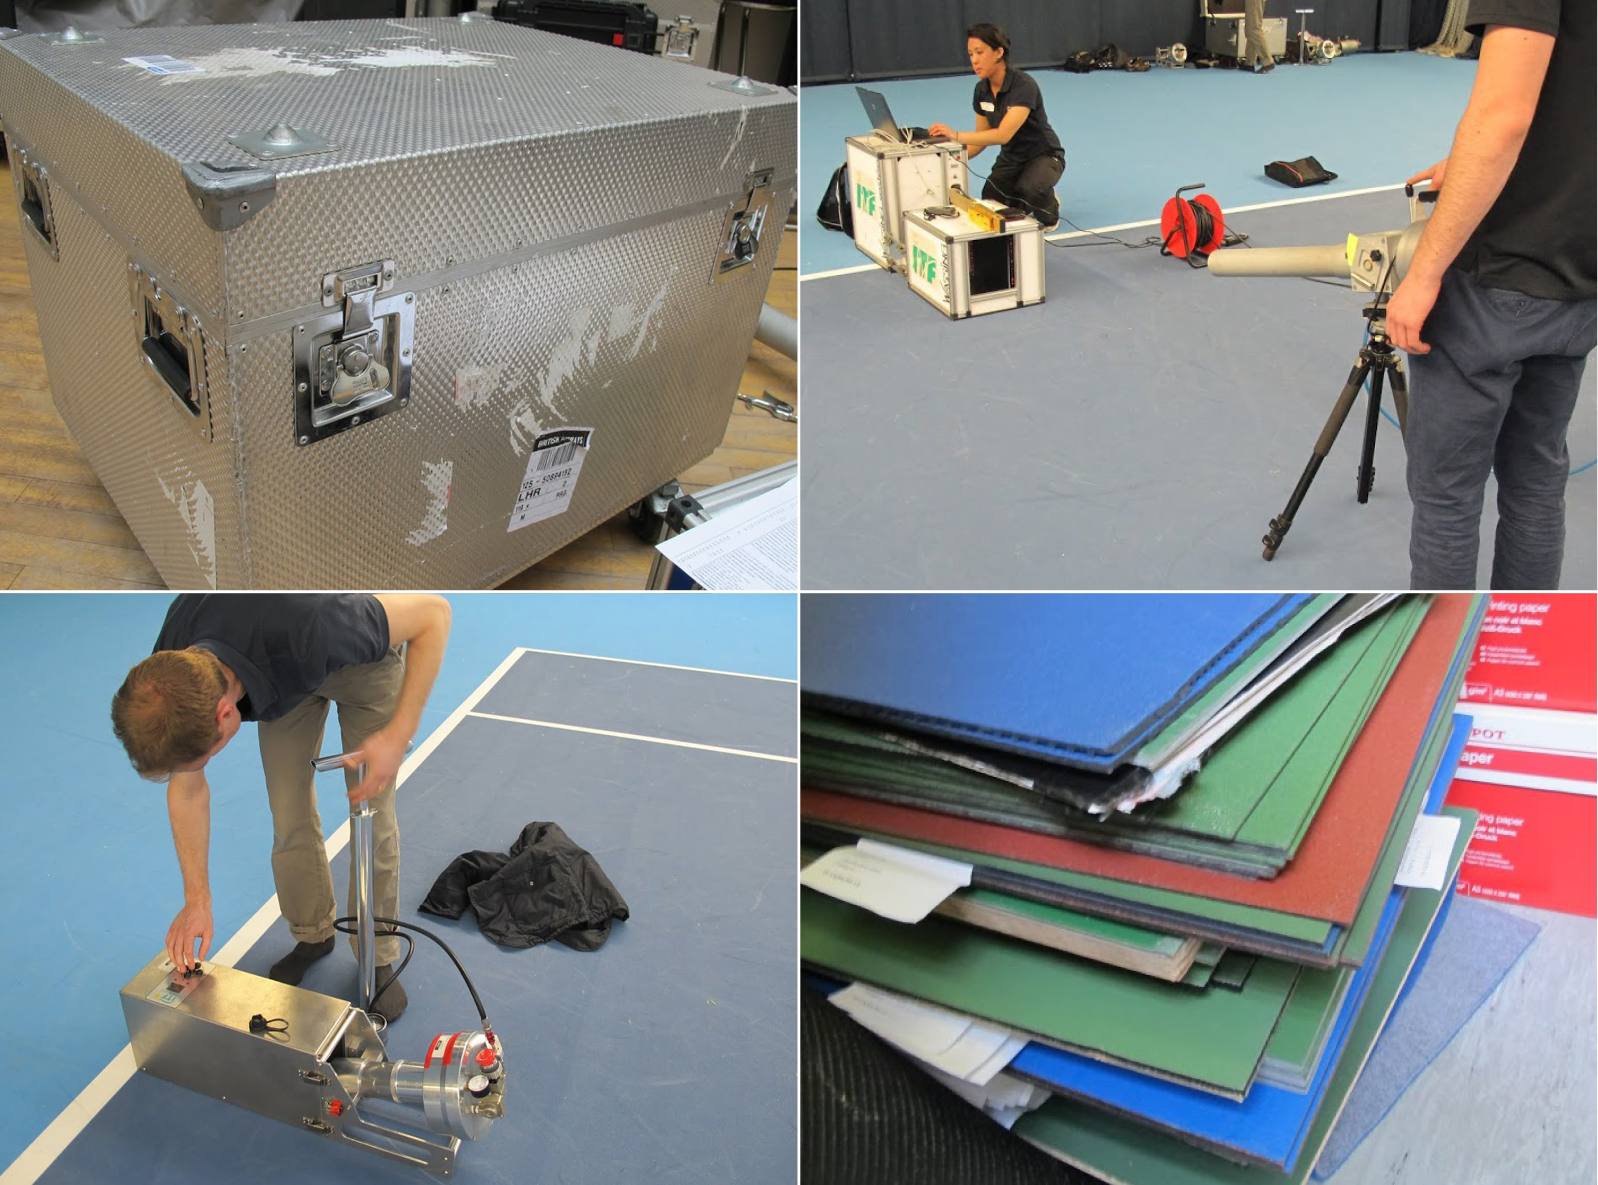 The International Tennis Federation uses a bulky steel crate, top left, to ship heavy measuring devices to tournament sites. The outsized Sestée, top right, is difficult to transport, so manufacturers often send samples of their courts, bottom right, to the ITF. The latest-generation device is the SPRite, operated here by Jamie Capel-Davies, manager of ITF's science and technical department. Its accuracy is still being studied.